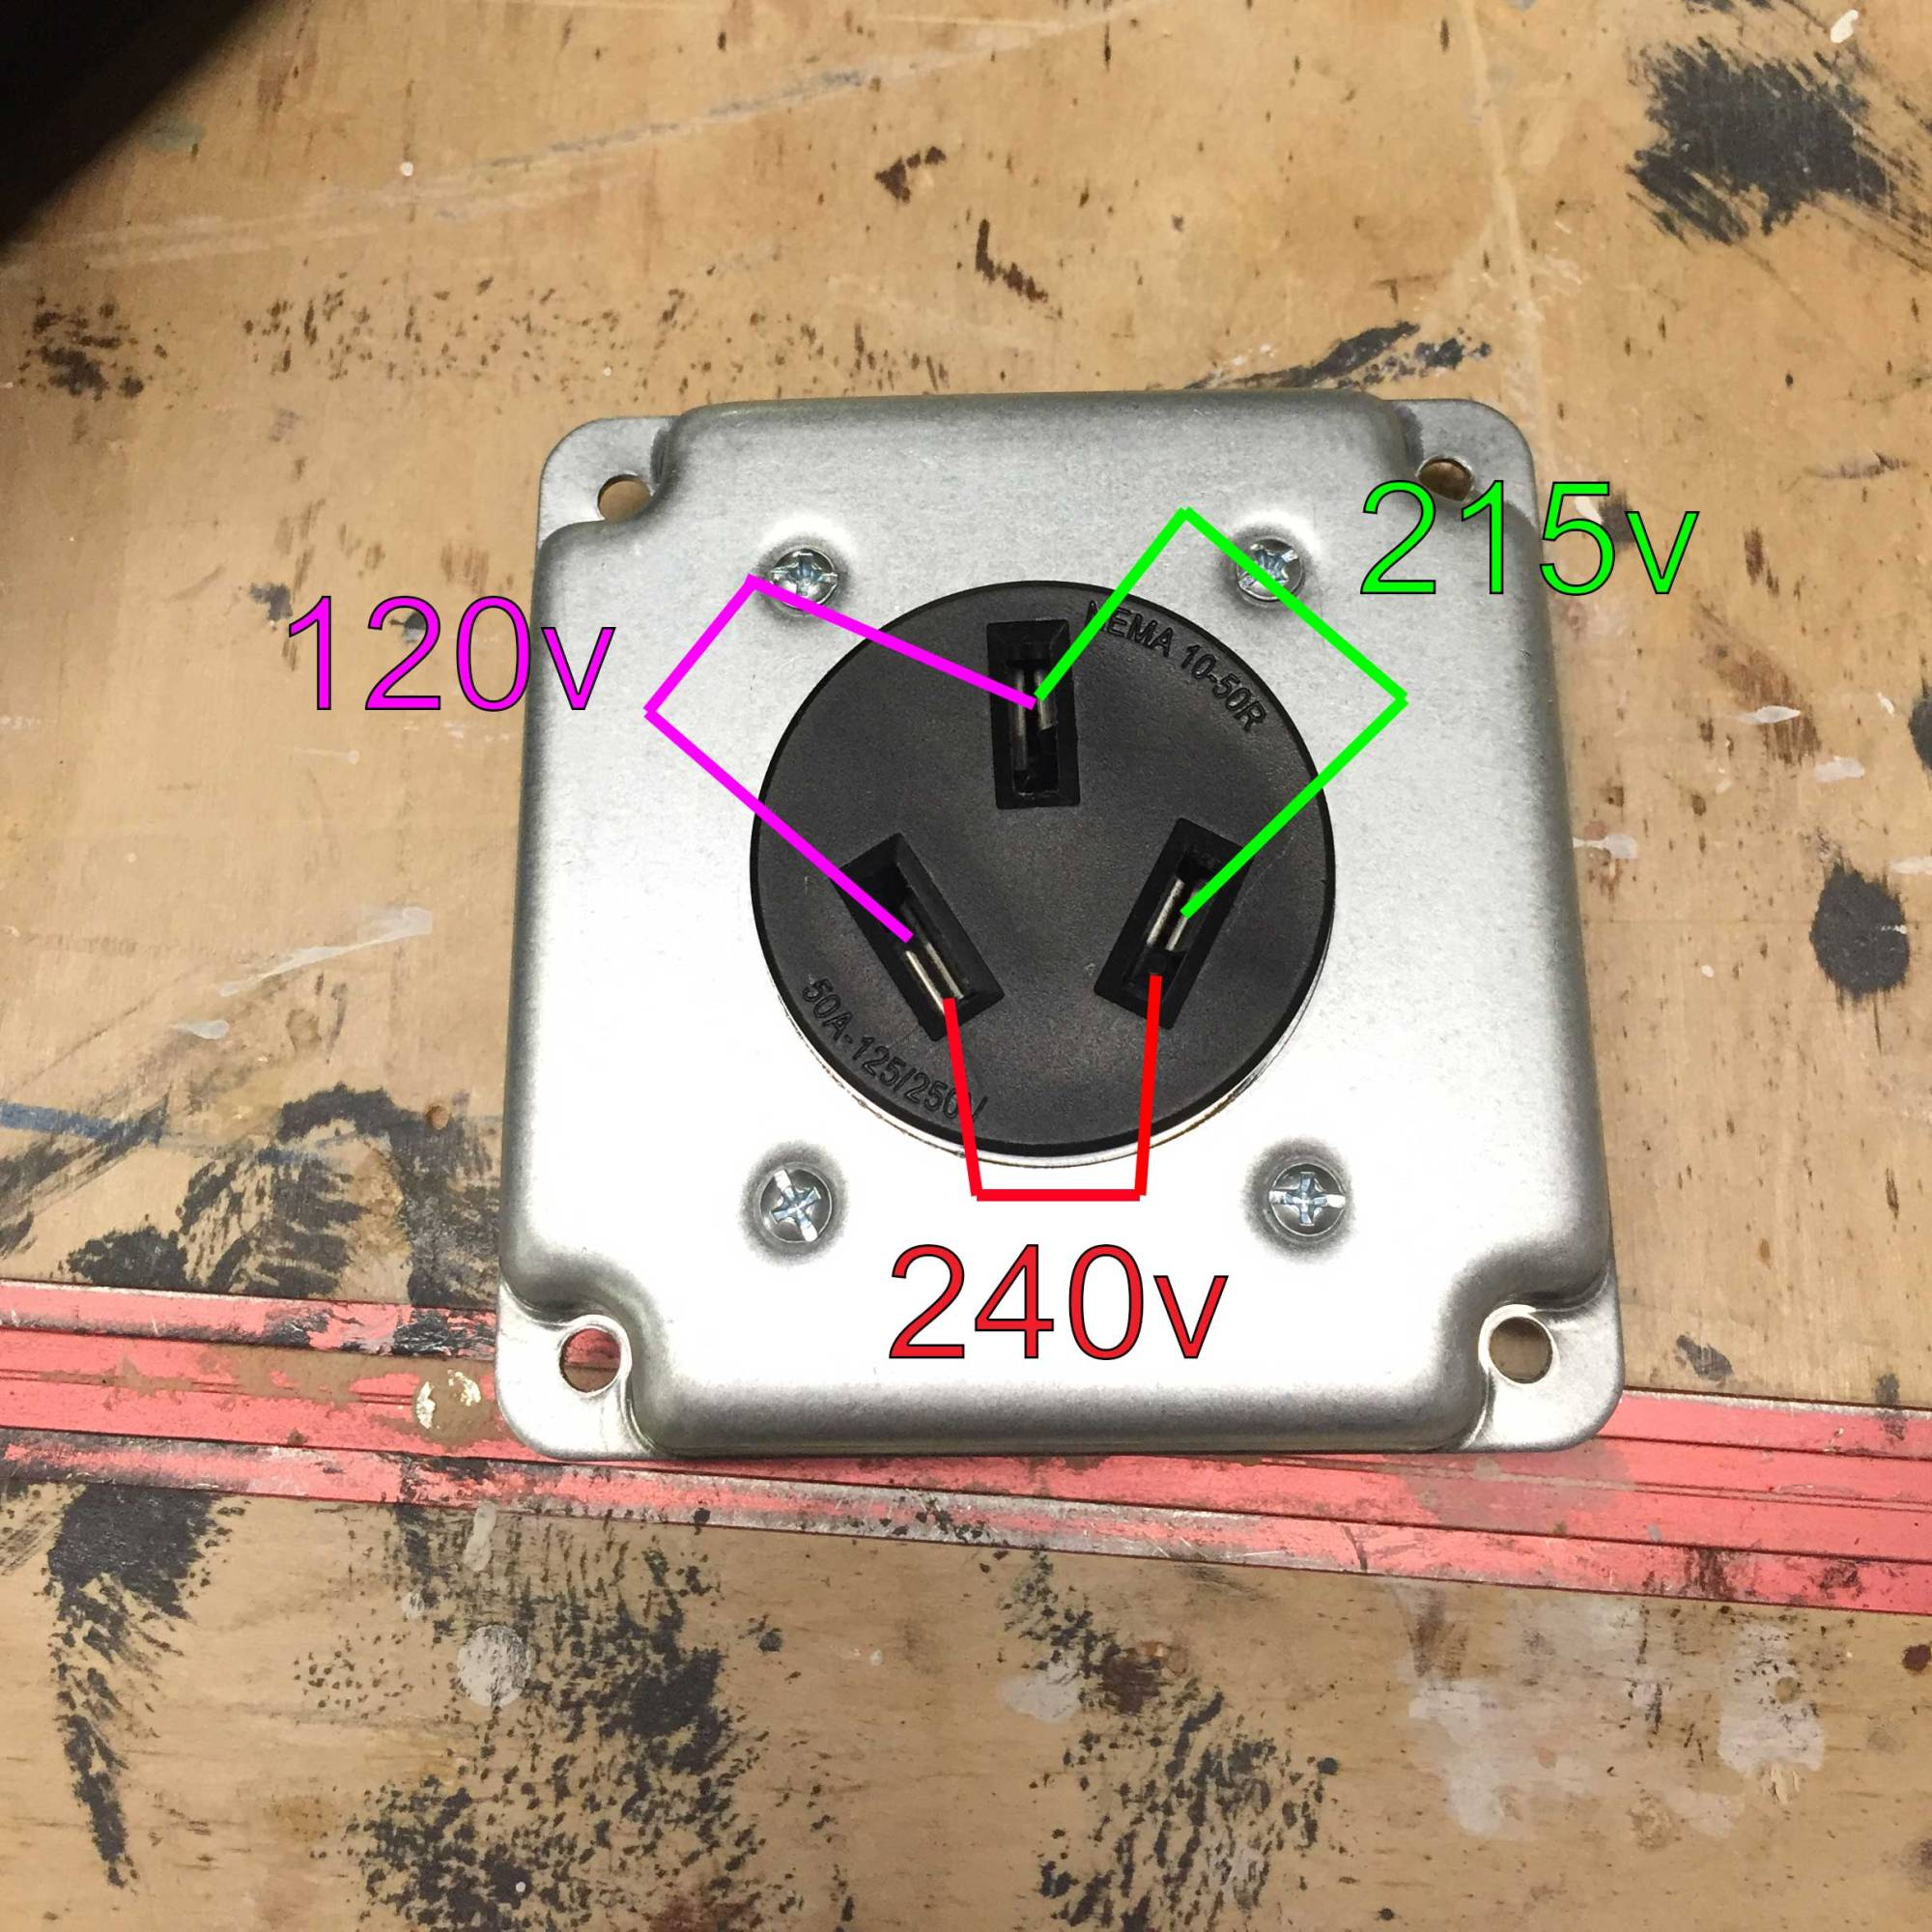 hight resolution of 240v outlet with 120v and 215v how